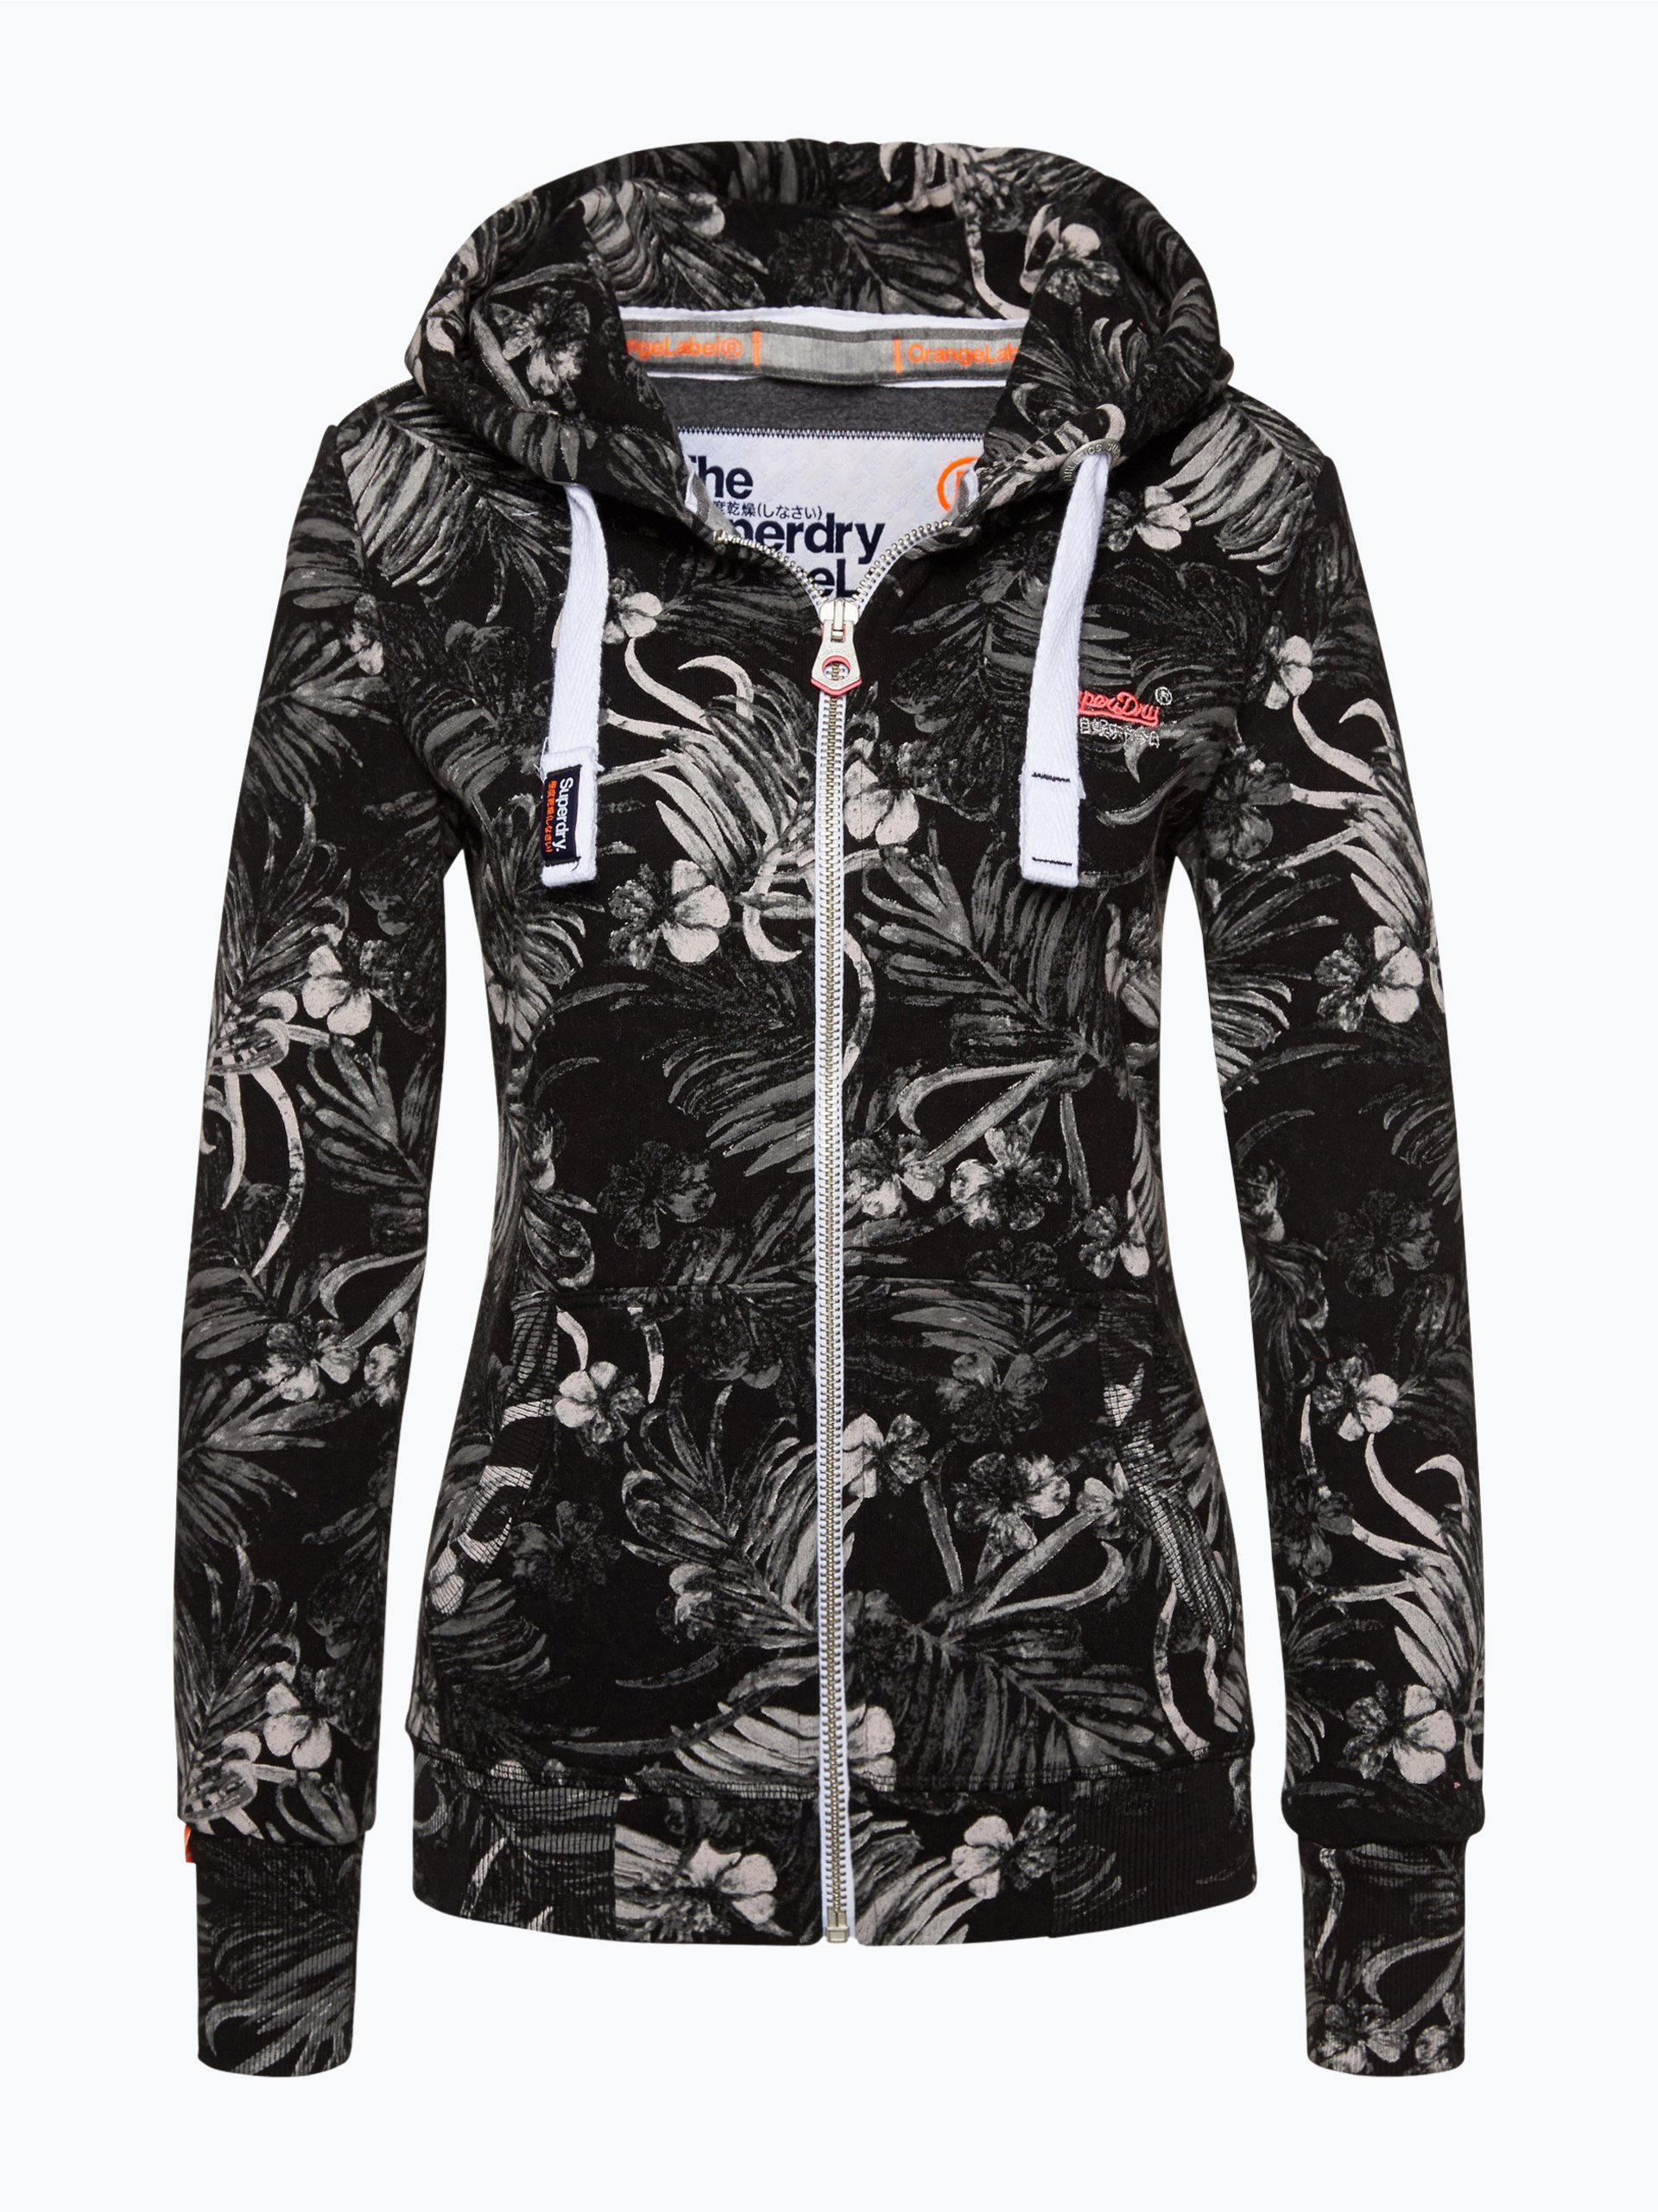 superdry damen sweatjacke schwarz gemustert online kaufen vangraaf com. Black Bedroom Furniture Sets. Home Design Ideas